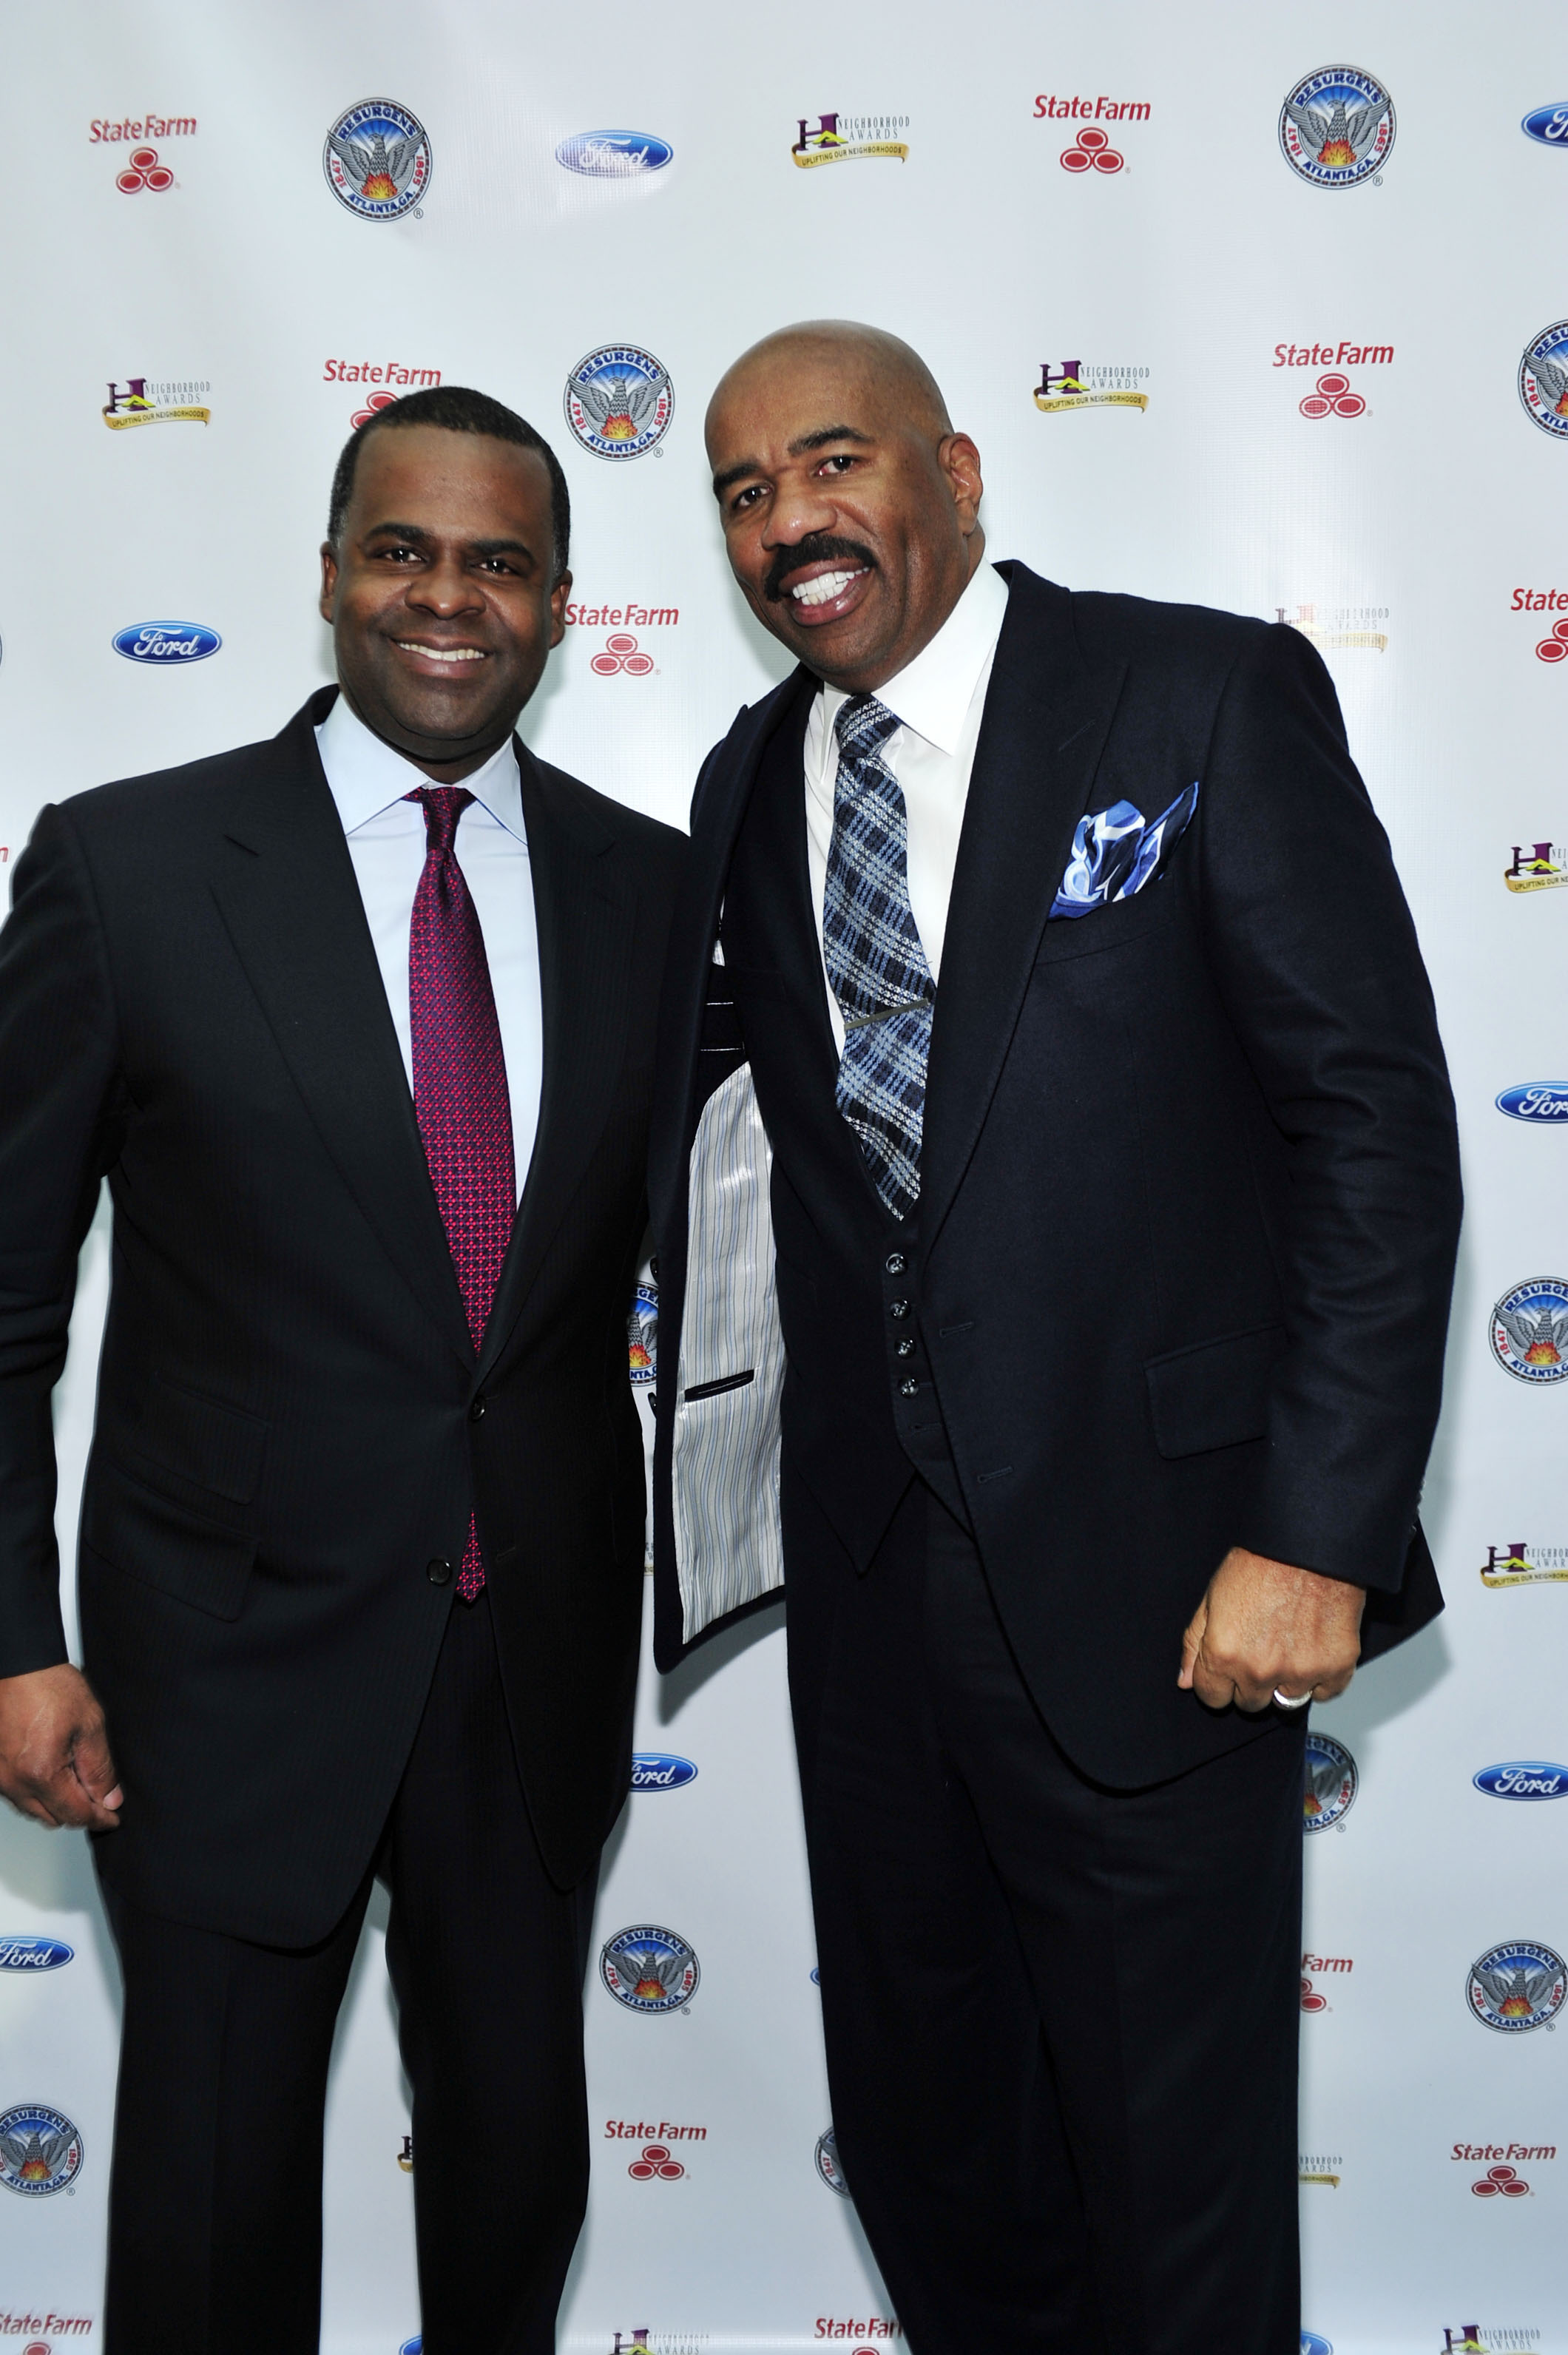 Steve Harvey Neighborhood Awards 2014